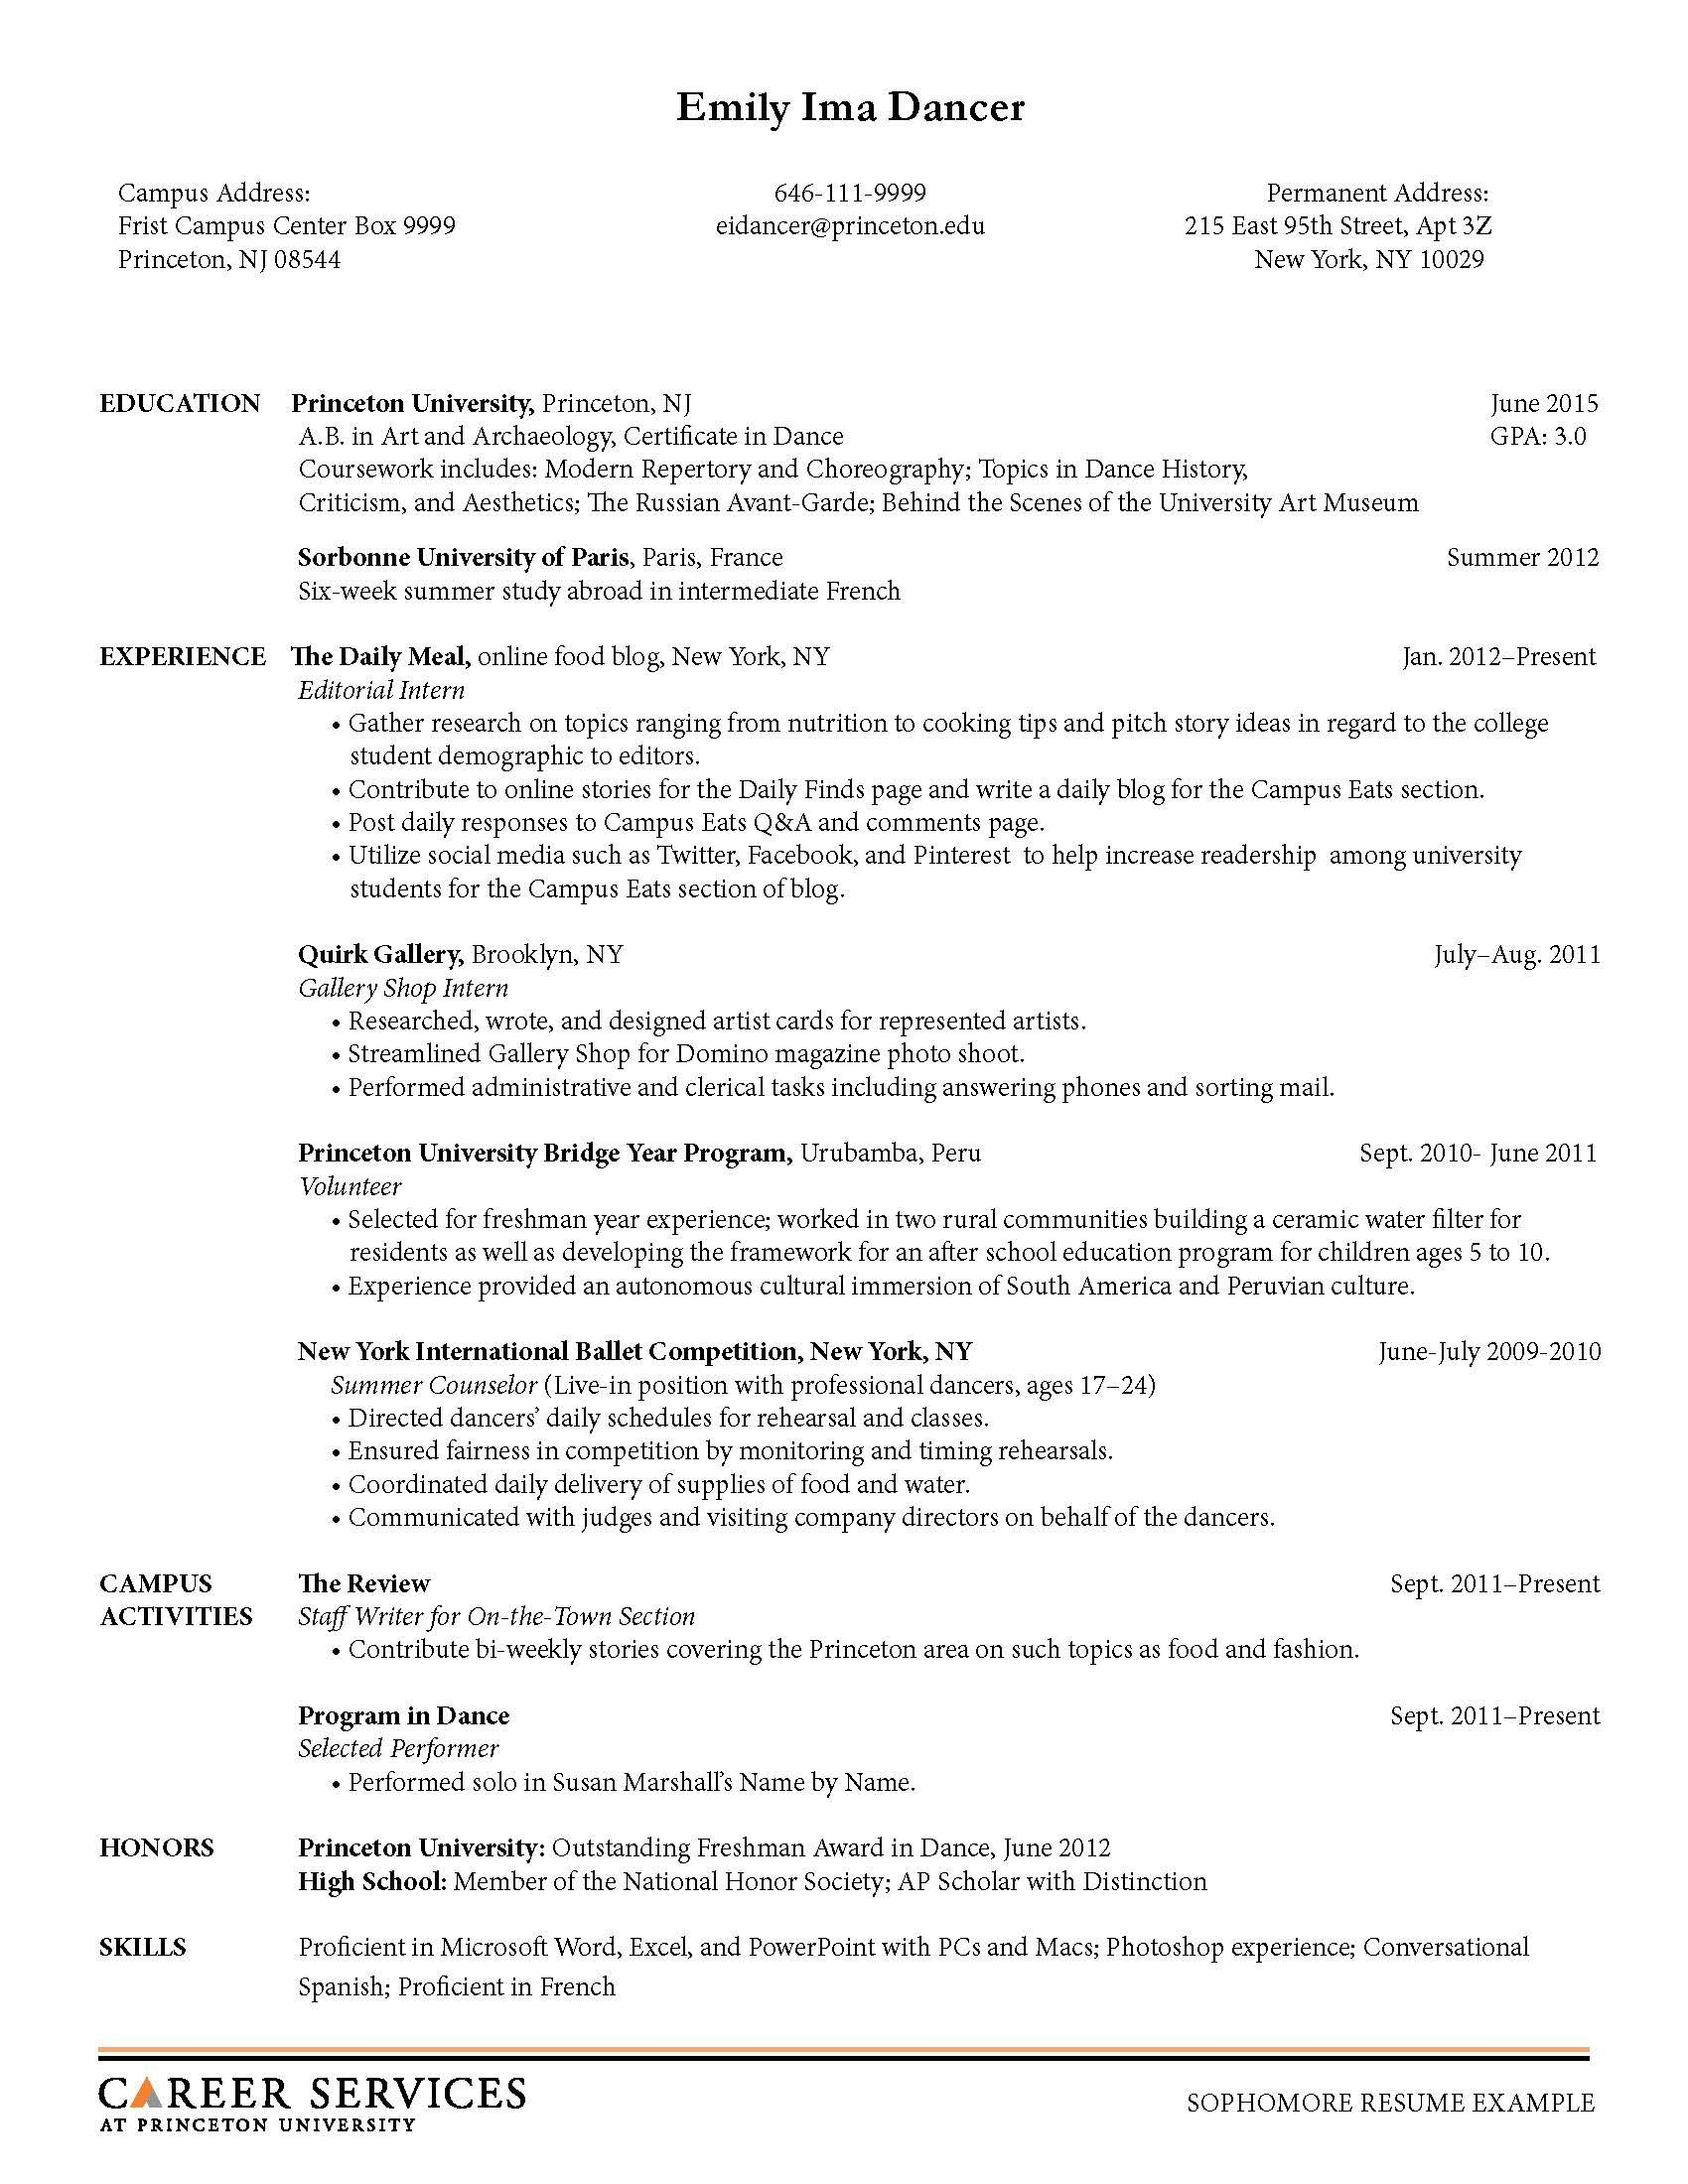 Picnictoimpeachus  Surprising Sample Resume Resume And Career On Pinterest With Fascinating Sample Marketing Resumes Besides Sales Account Executive Resume Furthermore Business Skills Resume With Lovely Tester Resume Also Career Builder Resume Template In Addition Controller Resume Example And Application Developer Resume As Well As Best Resume Verbs Additionally Maintenance Technician Resume Sample From Pinterestcom With Picnictoimpeachus  Fascinating Sample Resume Resume And Career On Pinterest With Lovely Sample Marketing Resumes Besides Sales Account Executive Resume Furthermore Business Skills Resume And Surprising Tester Resume Also Career Builder Resume Template In Addition Controller Resume Example From Pinterestcom